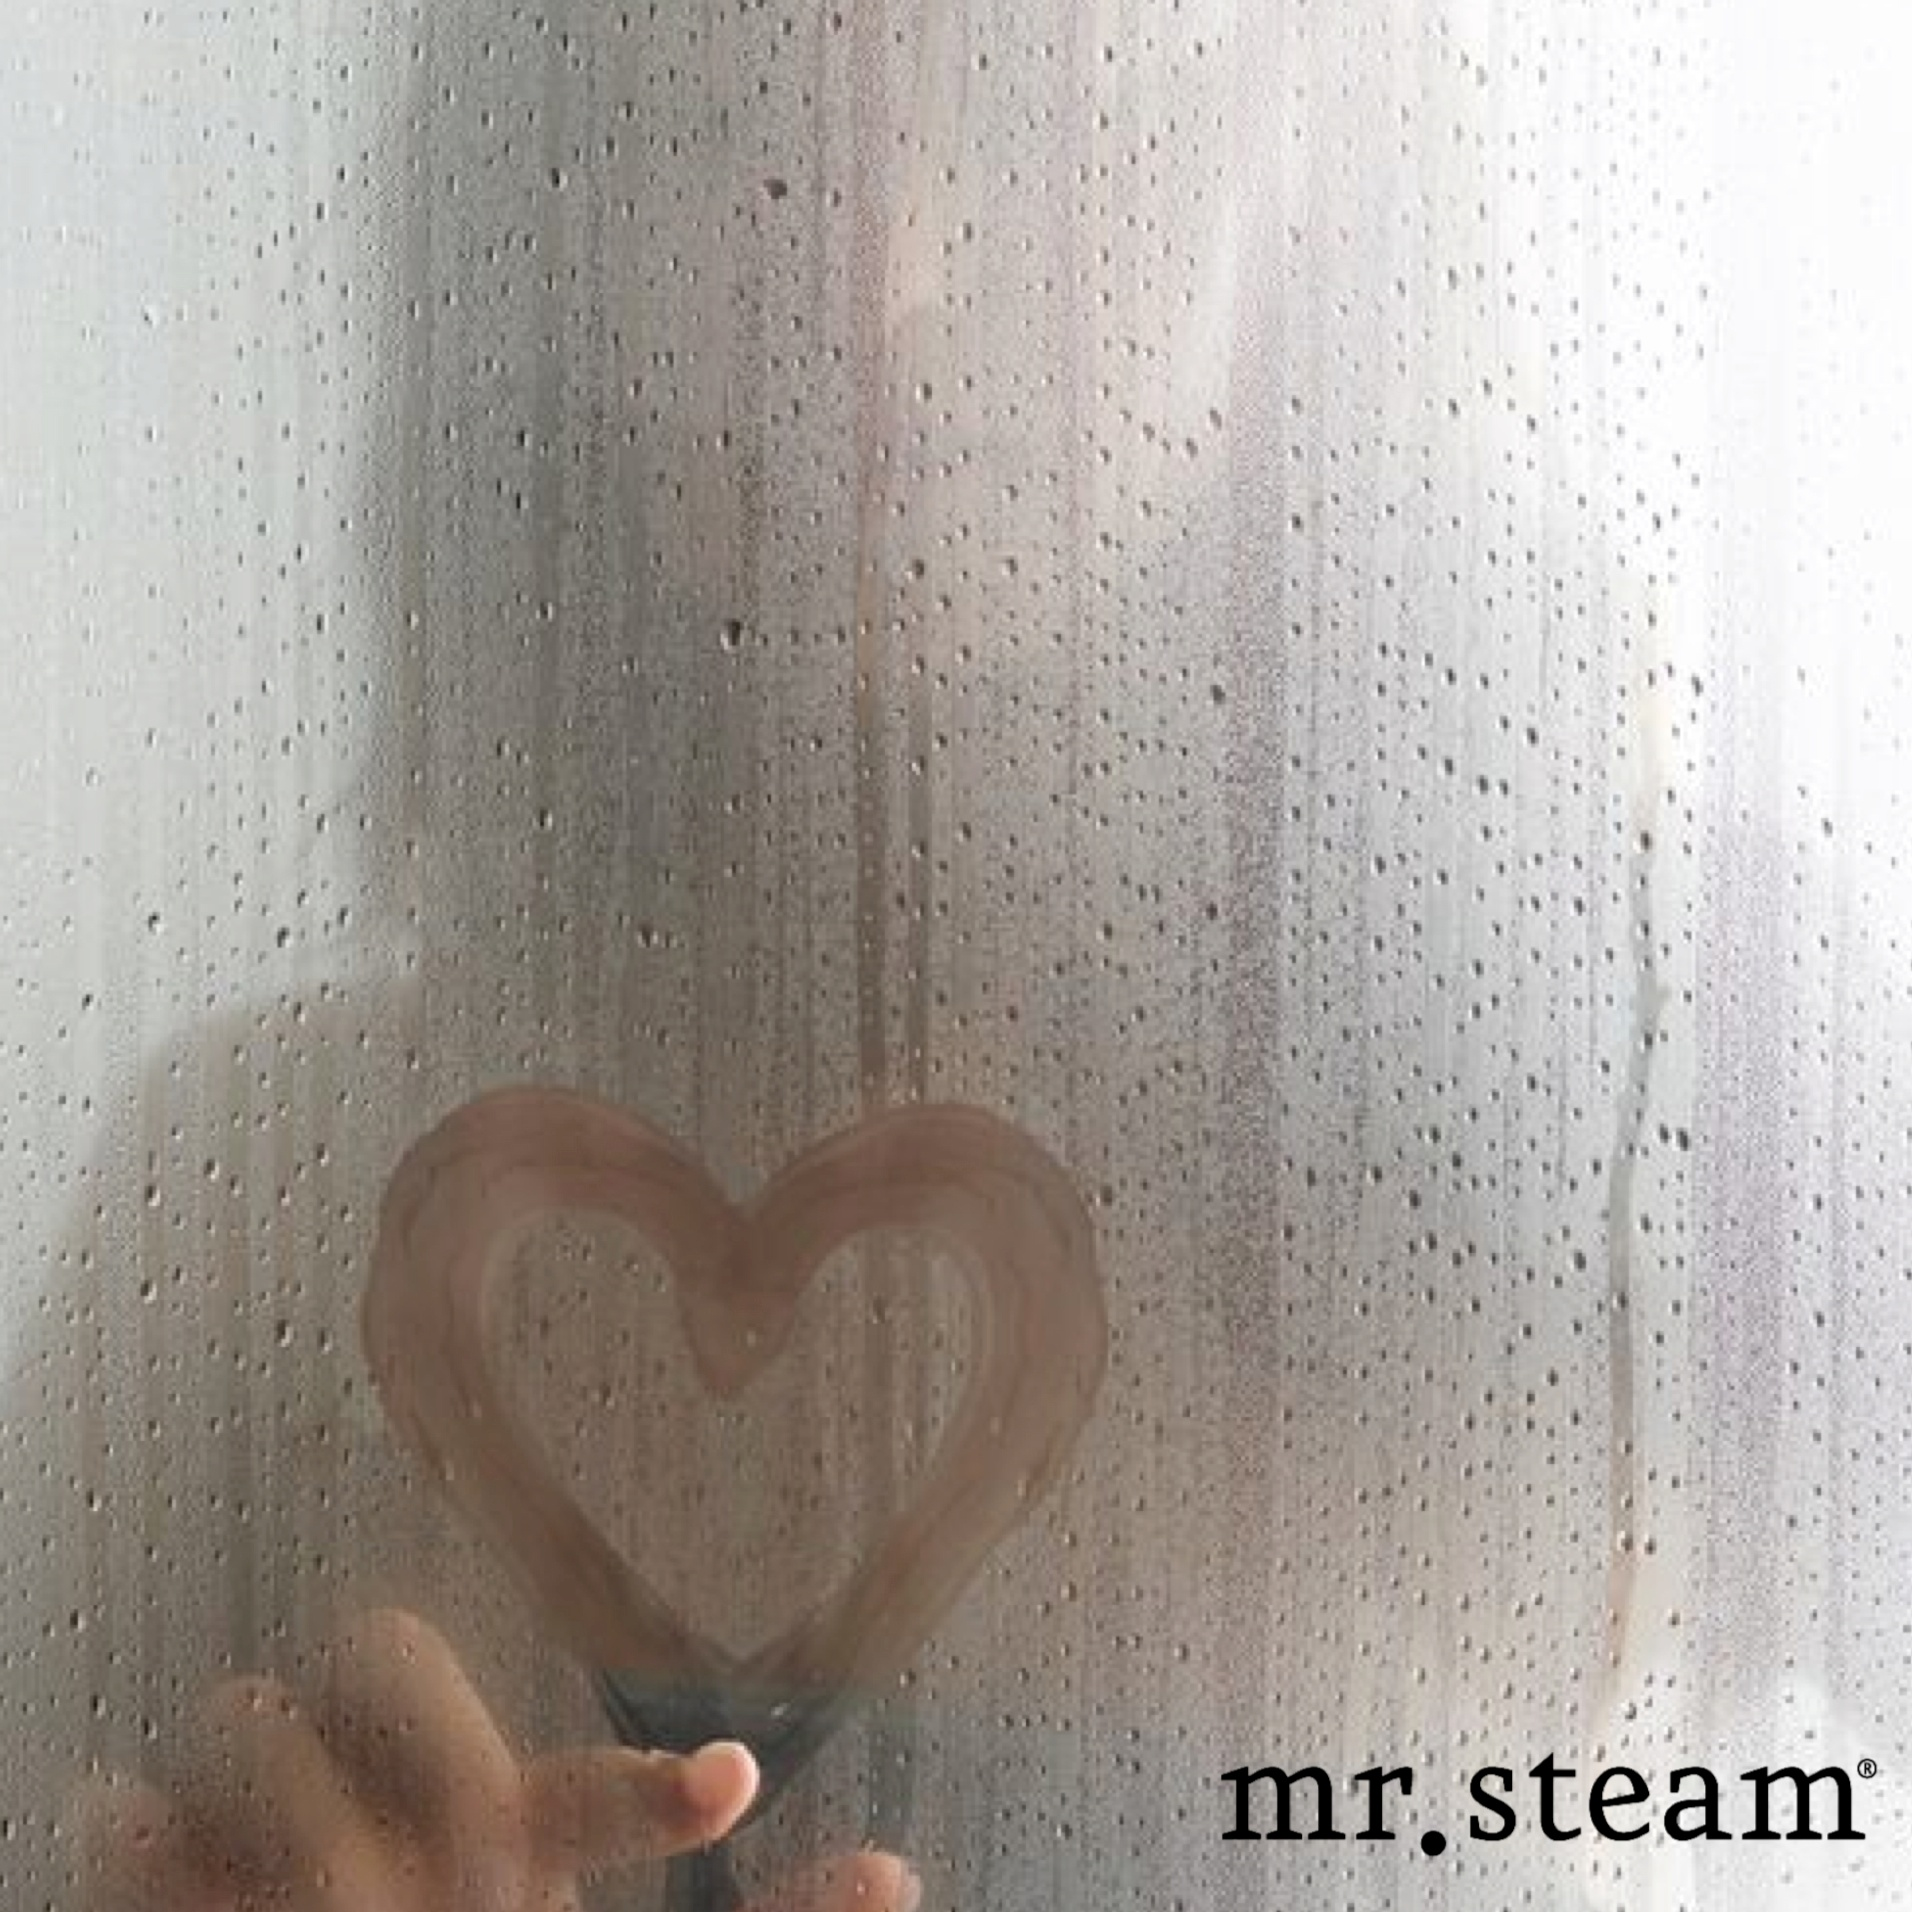 Once your steam shower is properly sealed and you've enjoyed all its steamy goodness, then it's time to let that steam out.